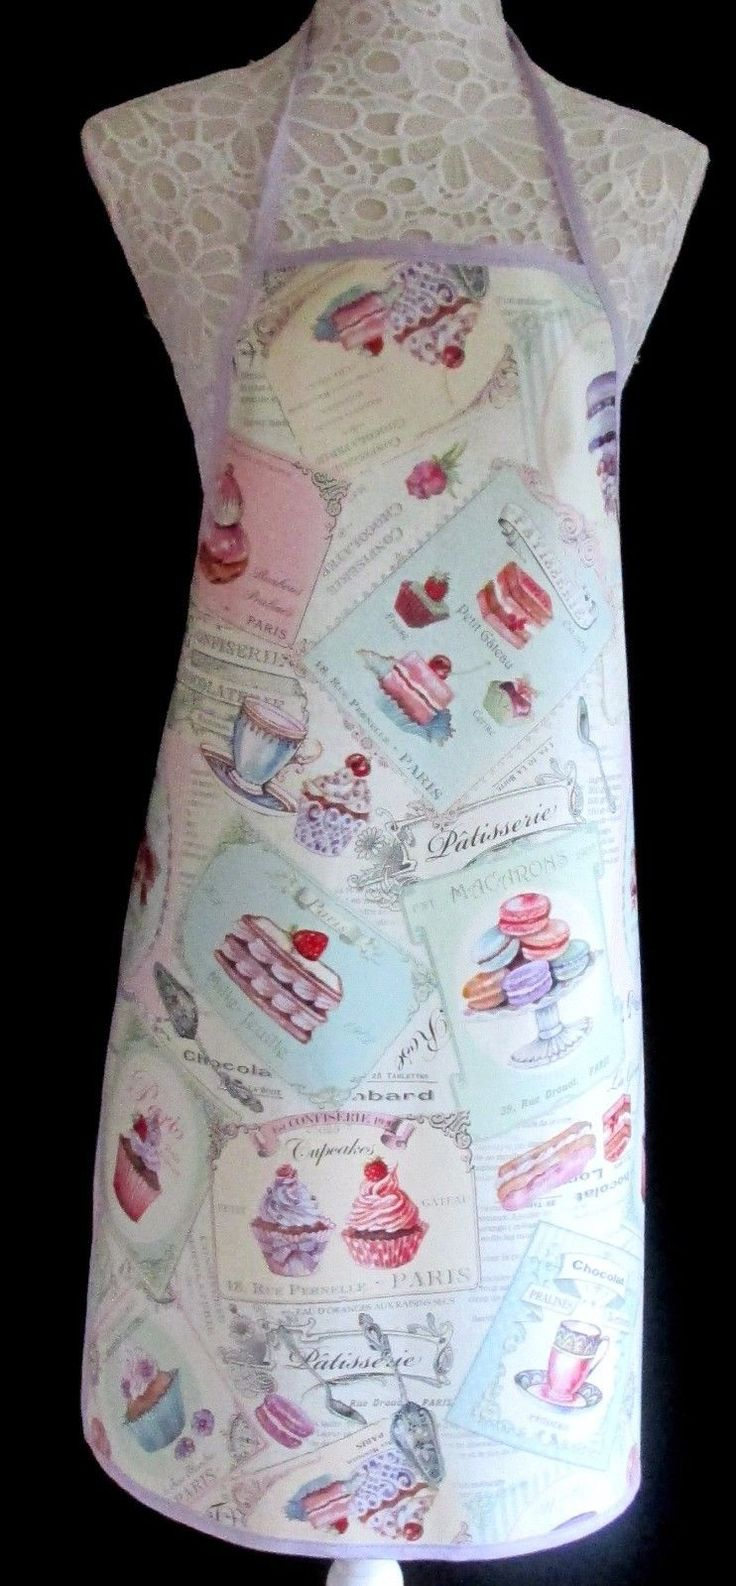 PATISSERIE DESIGN APRON / PINNY – PVC/OILCLOTH WIPECLEAN CRAFT COOKING BAKING | eBay